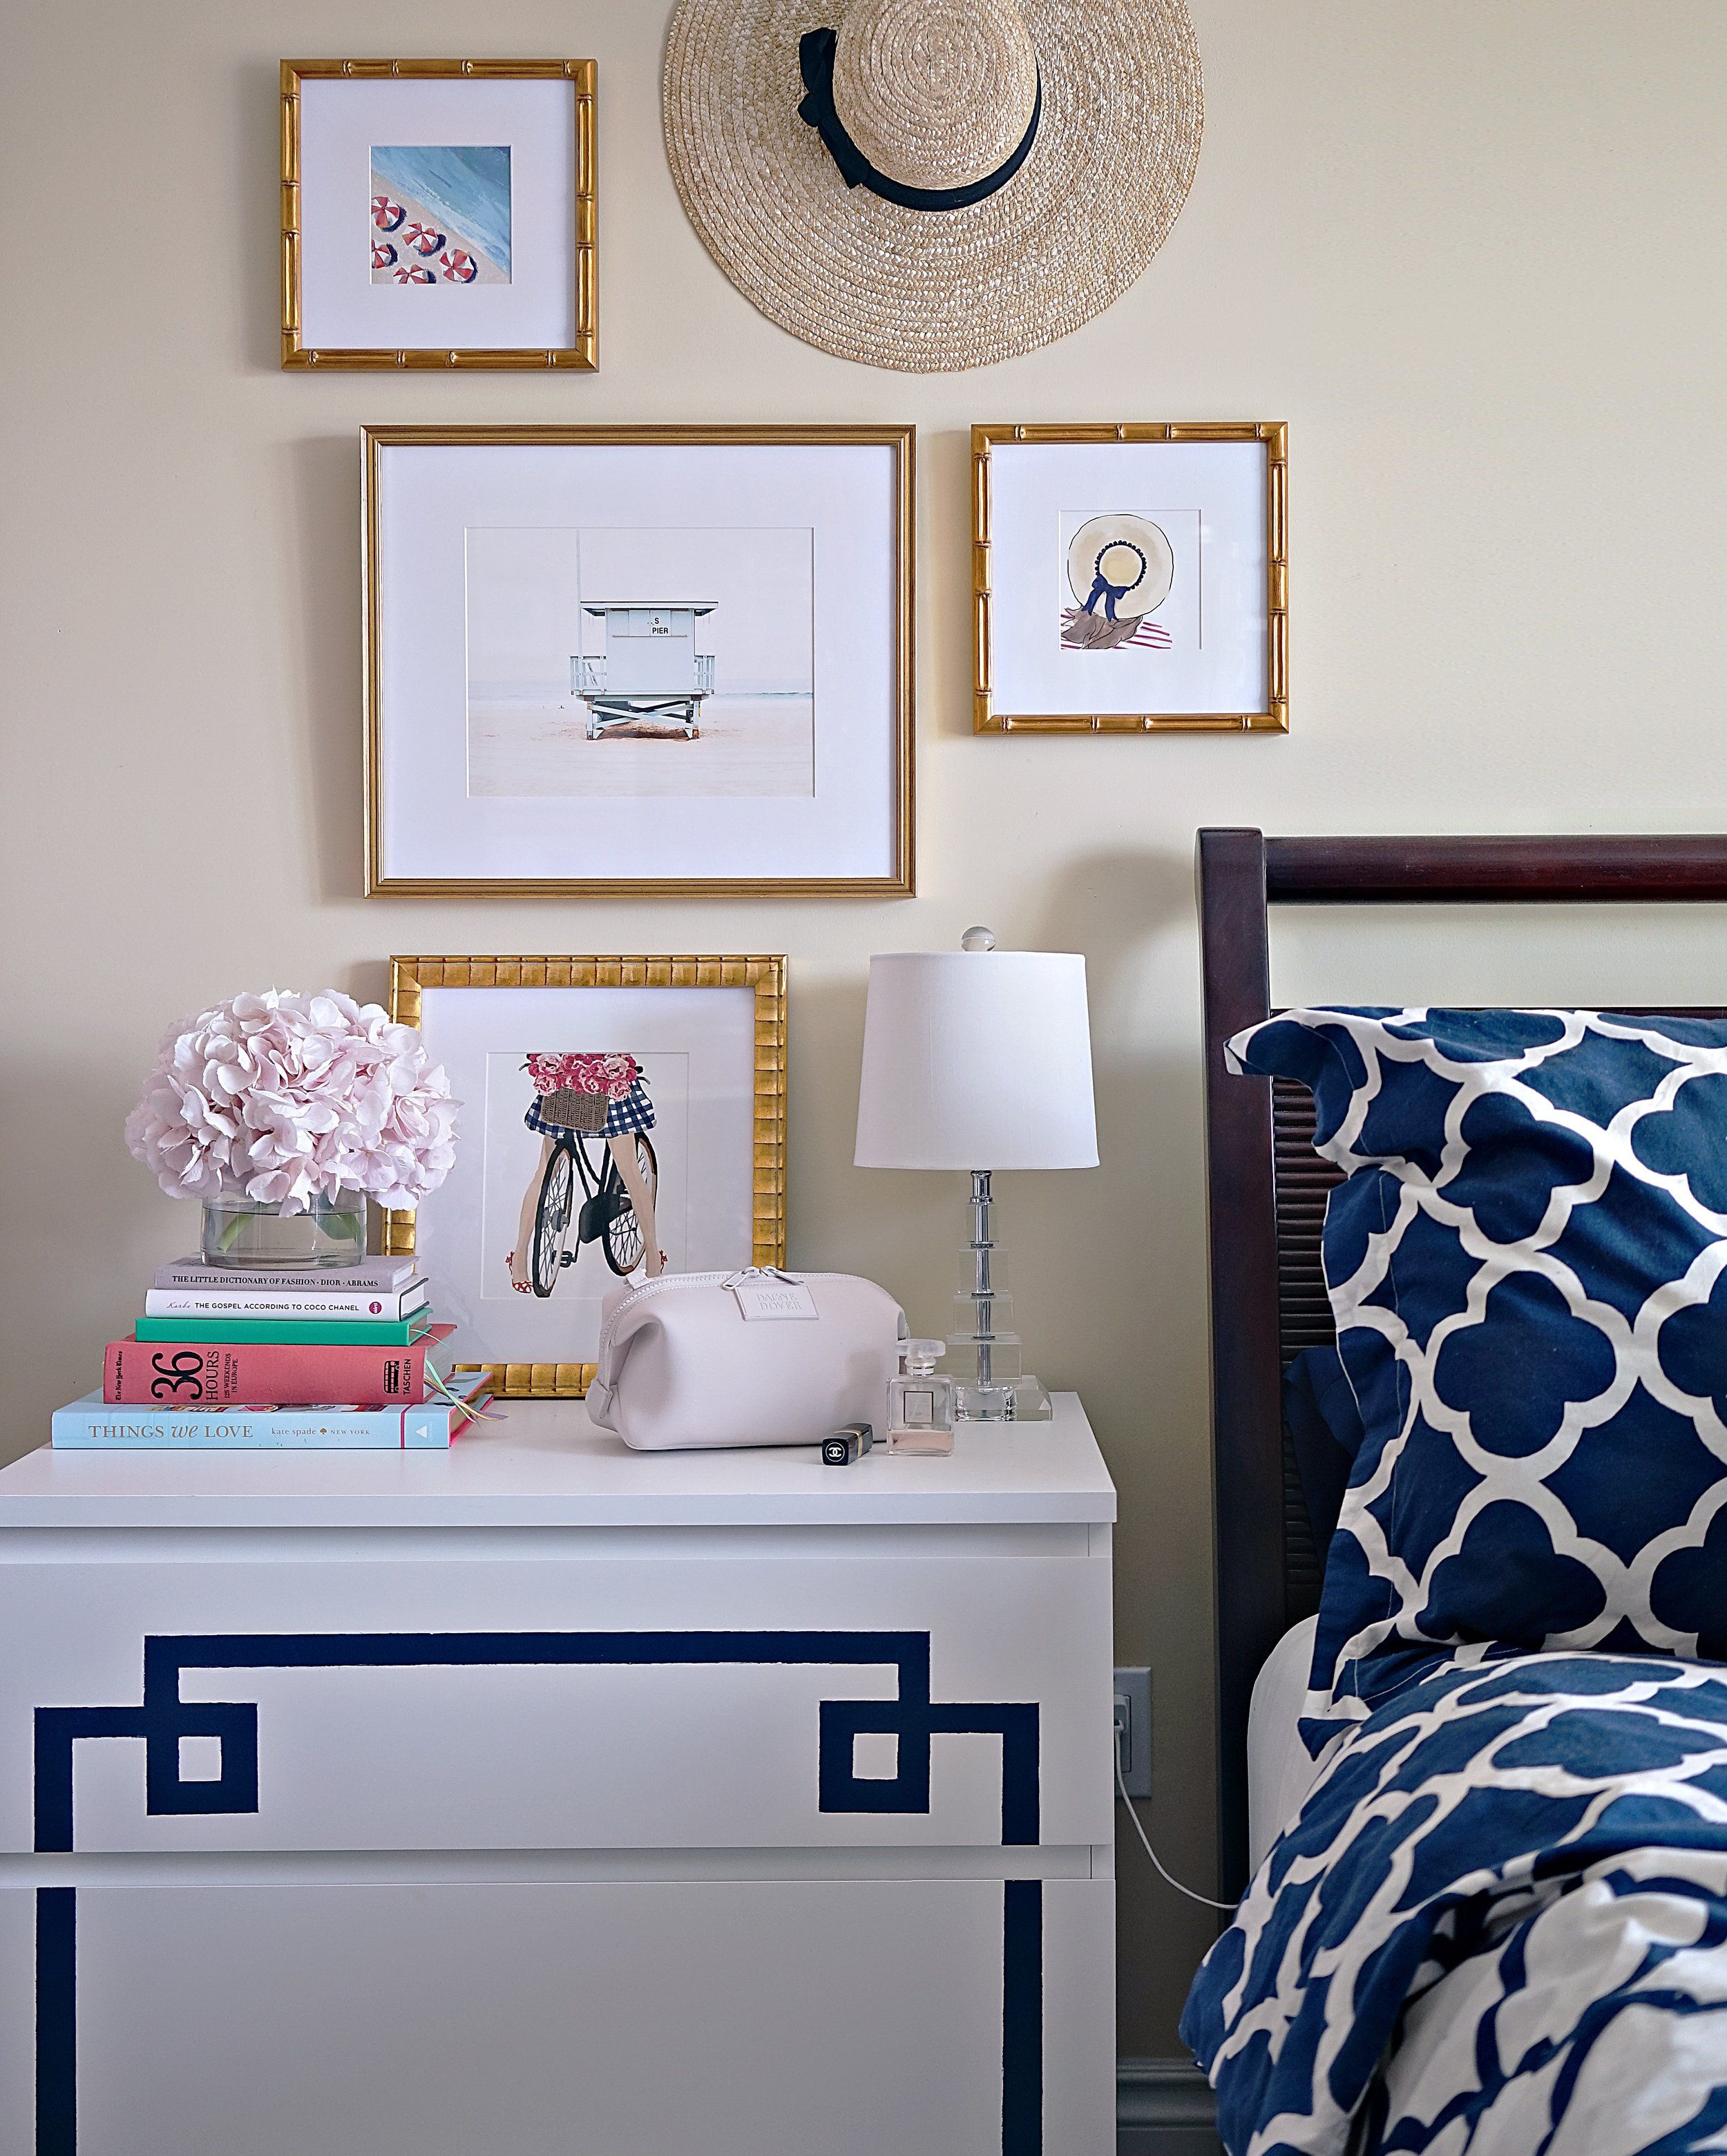 Master bedroom gallery wall   Vacation Vignettes with Bree Madden Photography  Gallery wall